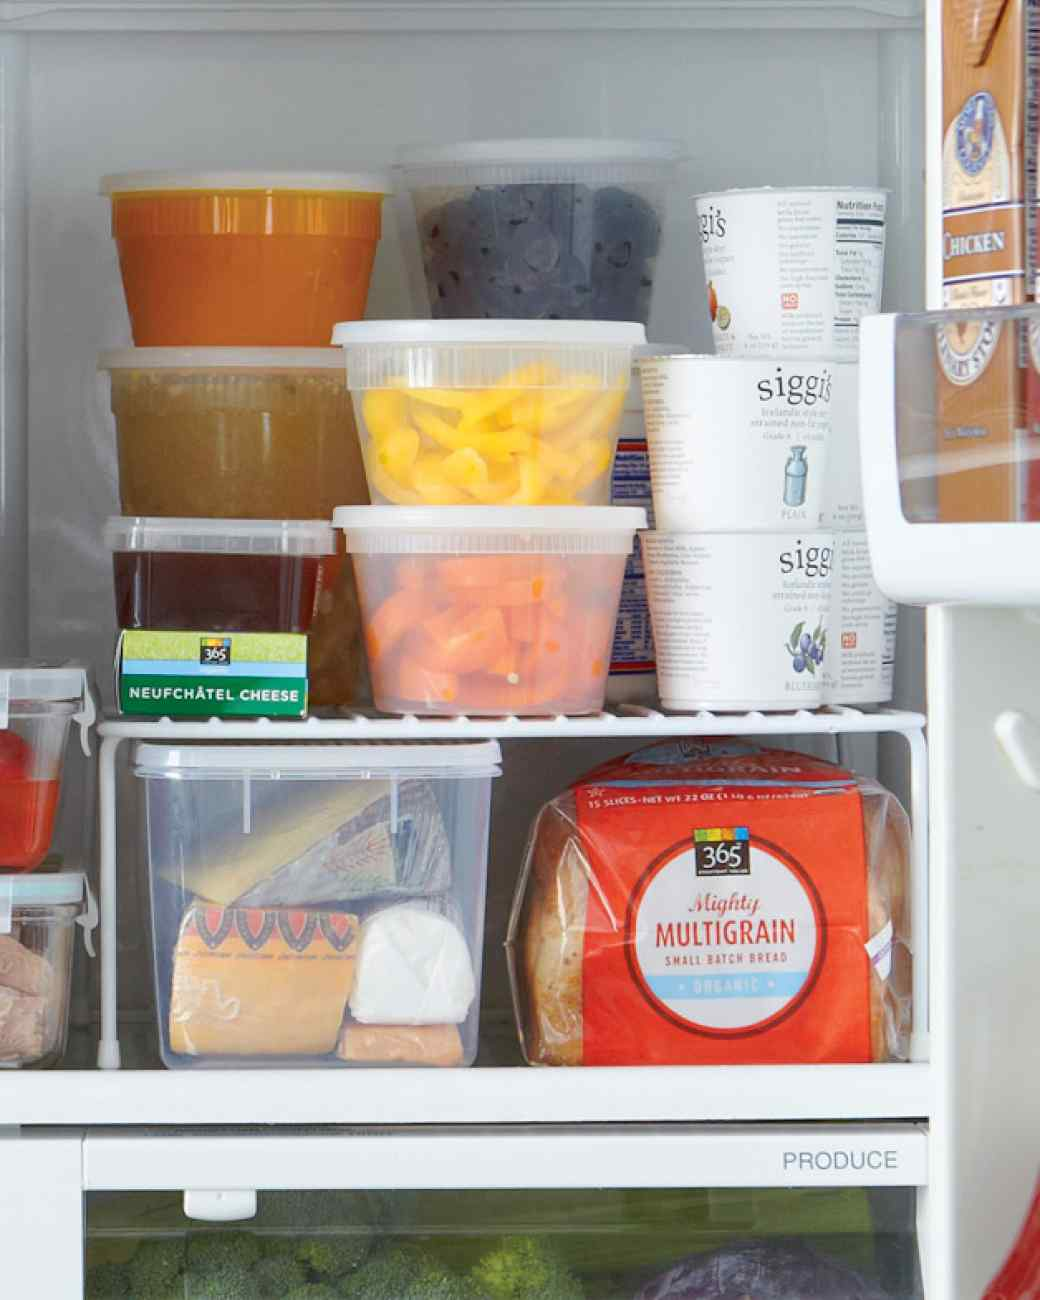 Place a shelf riser in your refrigerator to add more space to place food, from Martha Stewart.